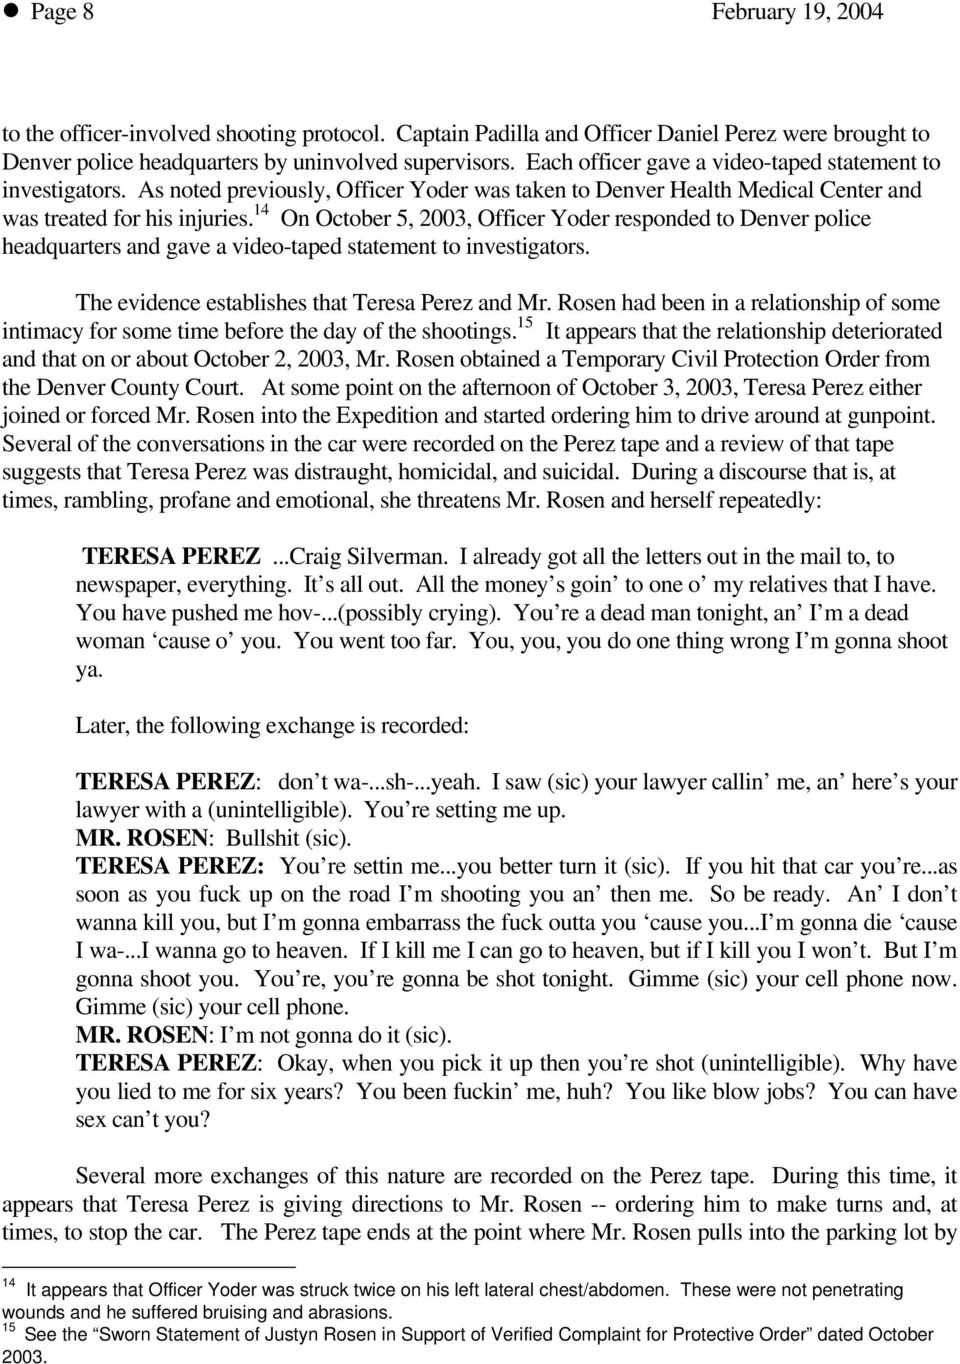 14 On October 5, 2003, Officer Yoder responded to Denver police headquarters and gave a video-taped statement to investigators. The evidence establishes that Teresa Perez and Mr.